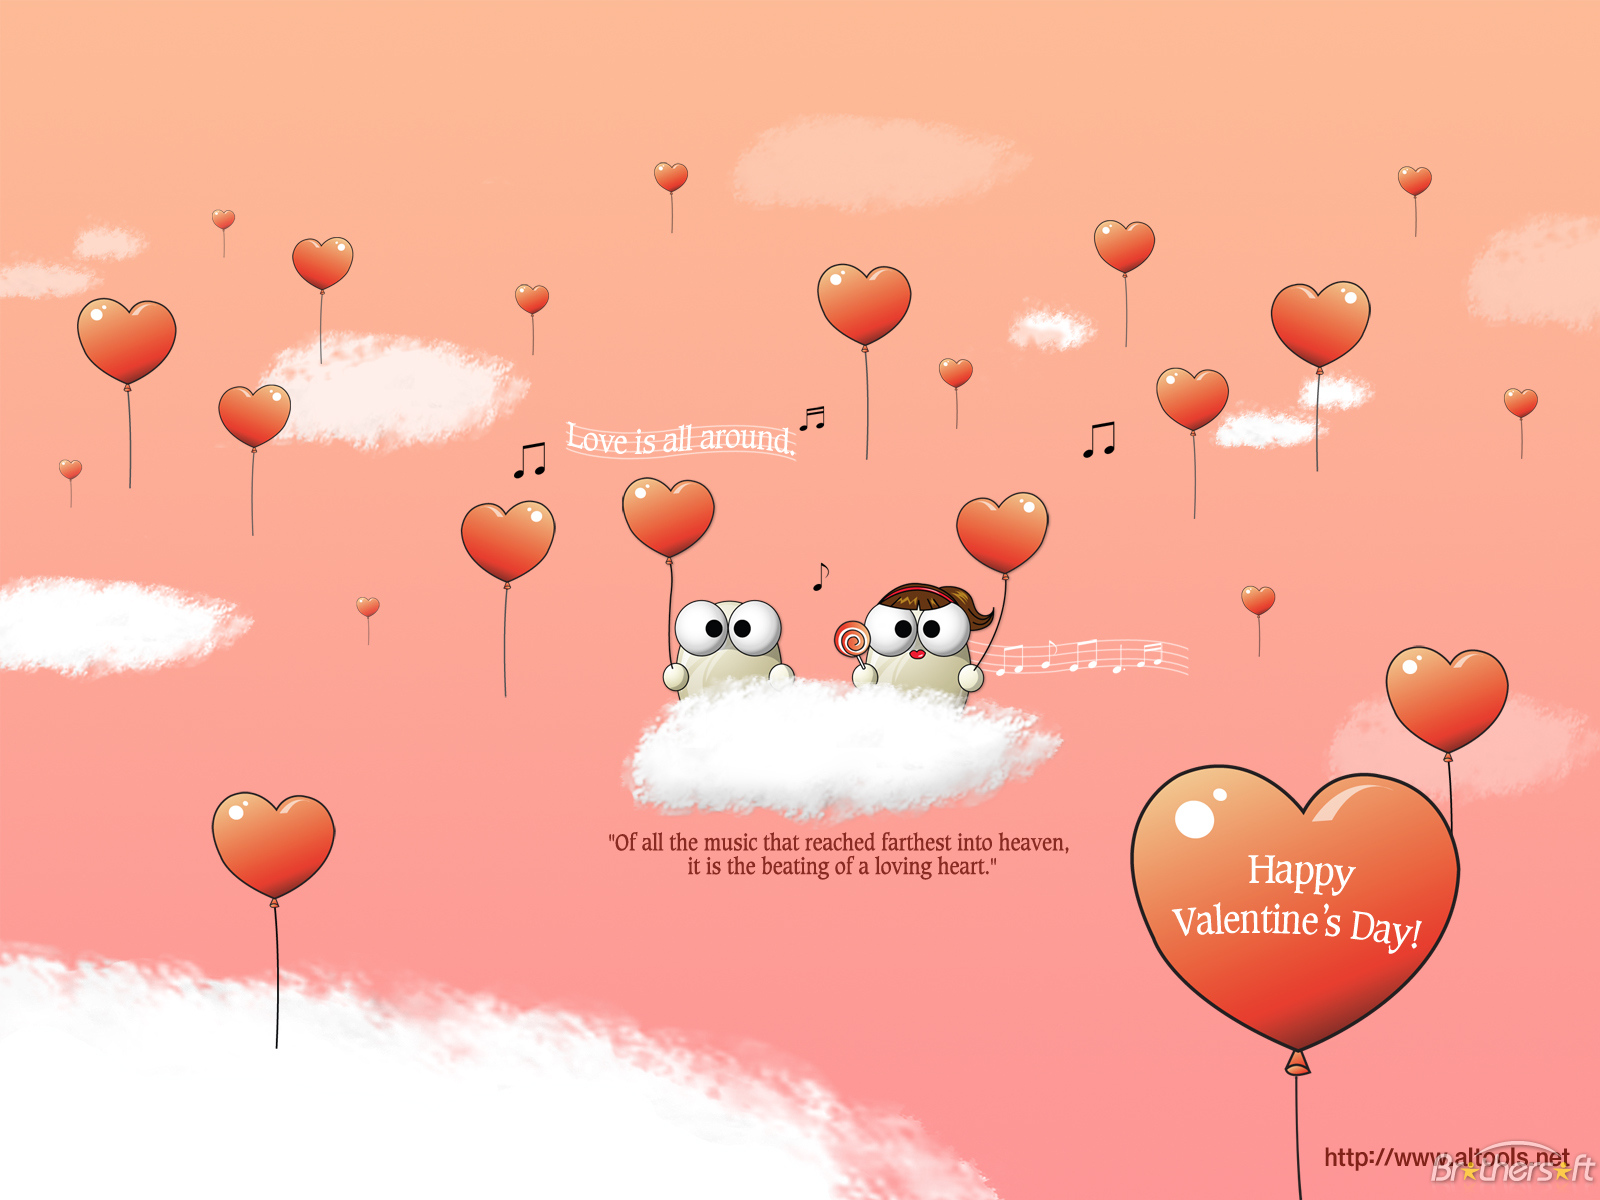 Animated Valentines Day Backgrounds Images amp Pictures   Becuo 1600x1200